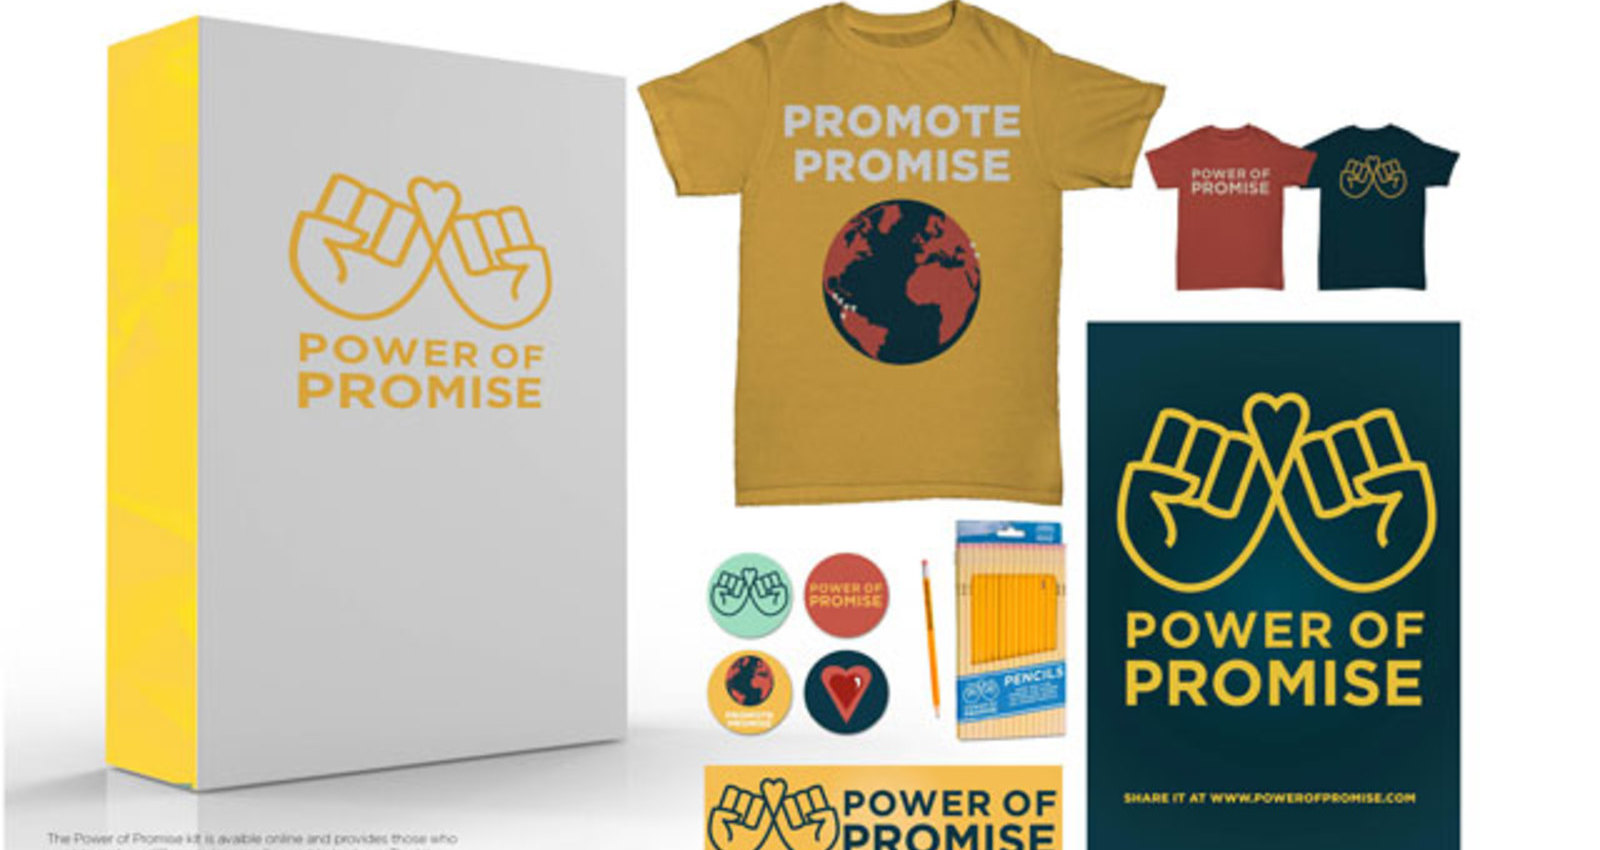 Power of Promise